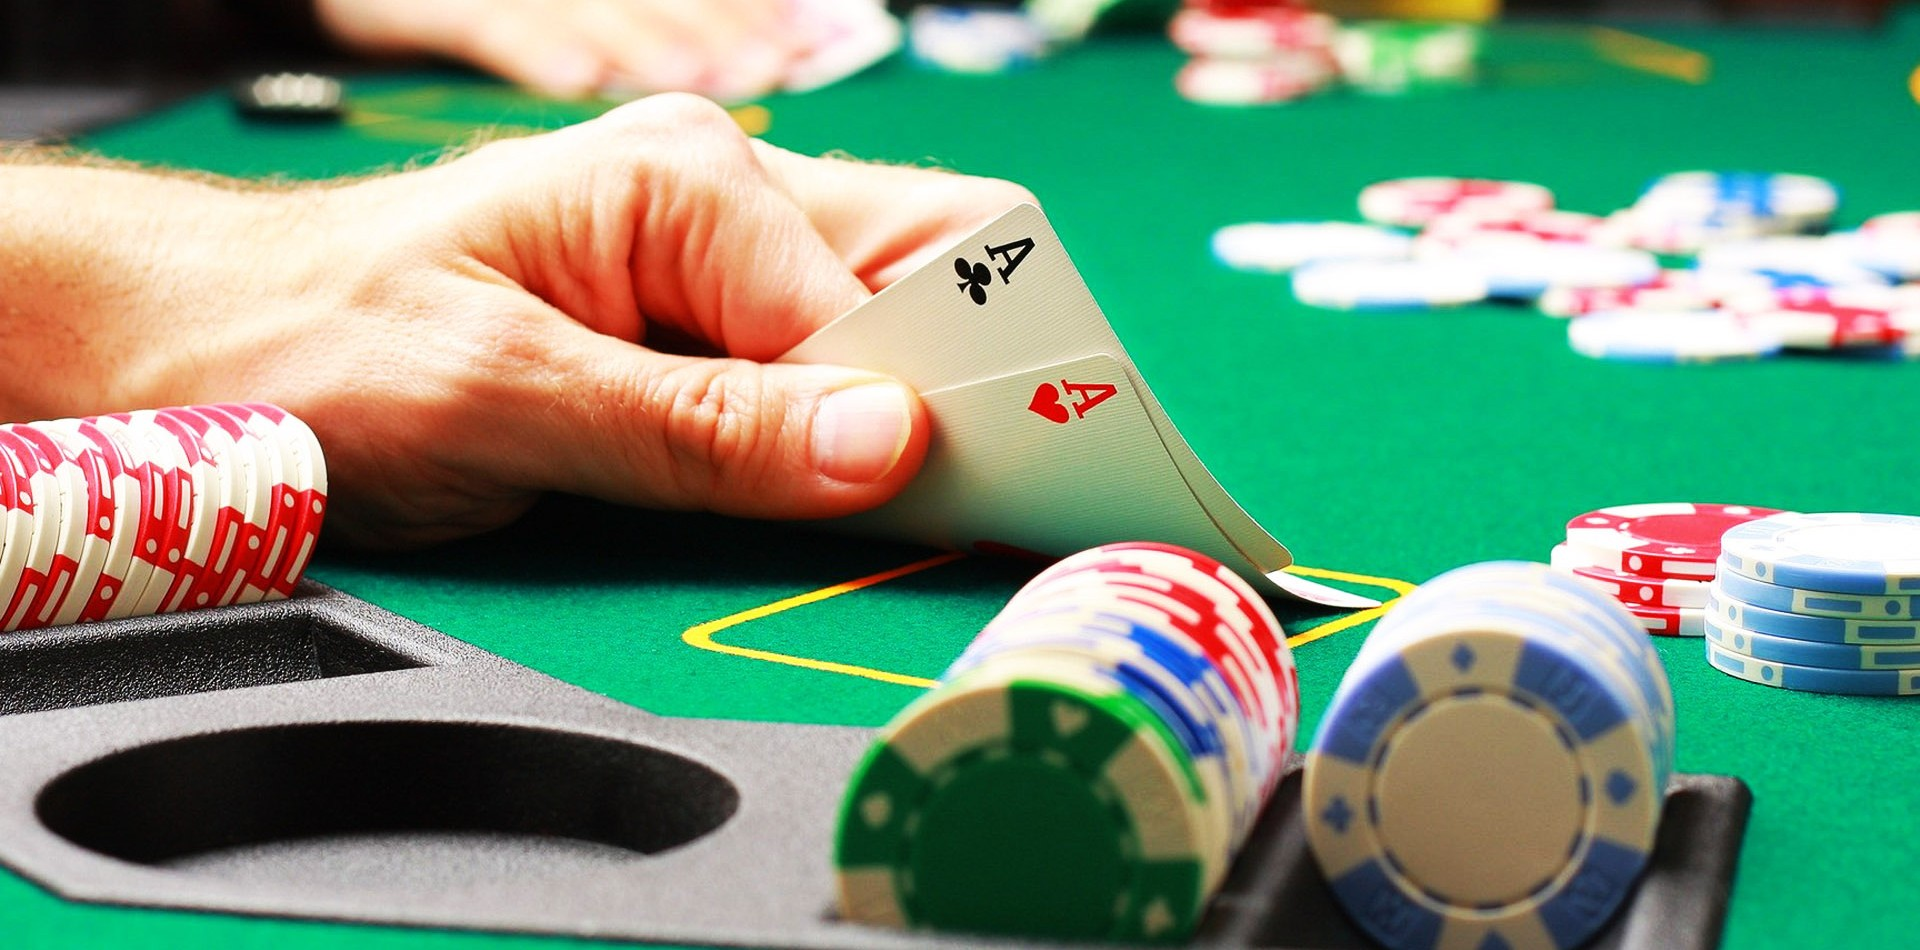 Where to play the variety of ball casino games on online?